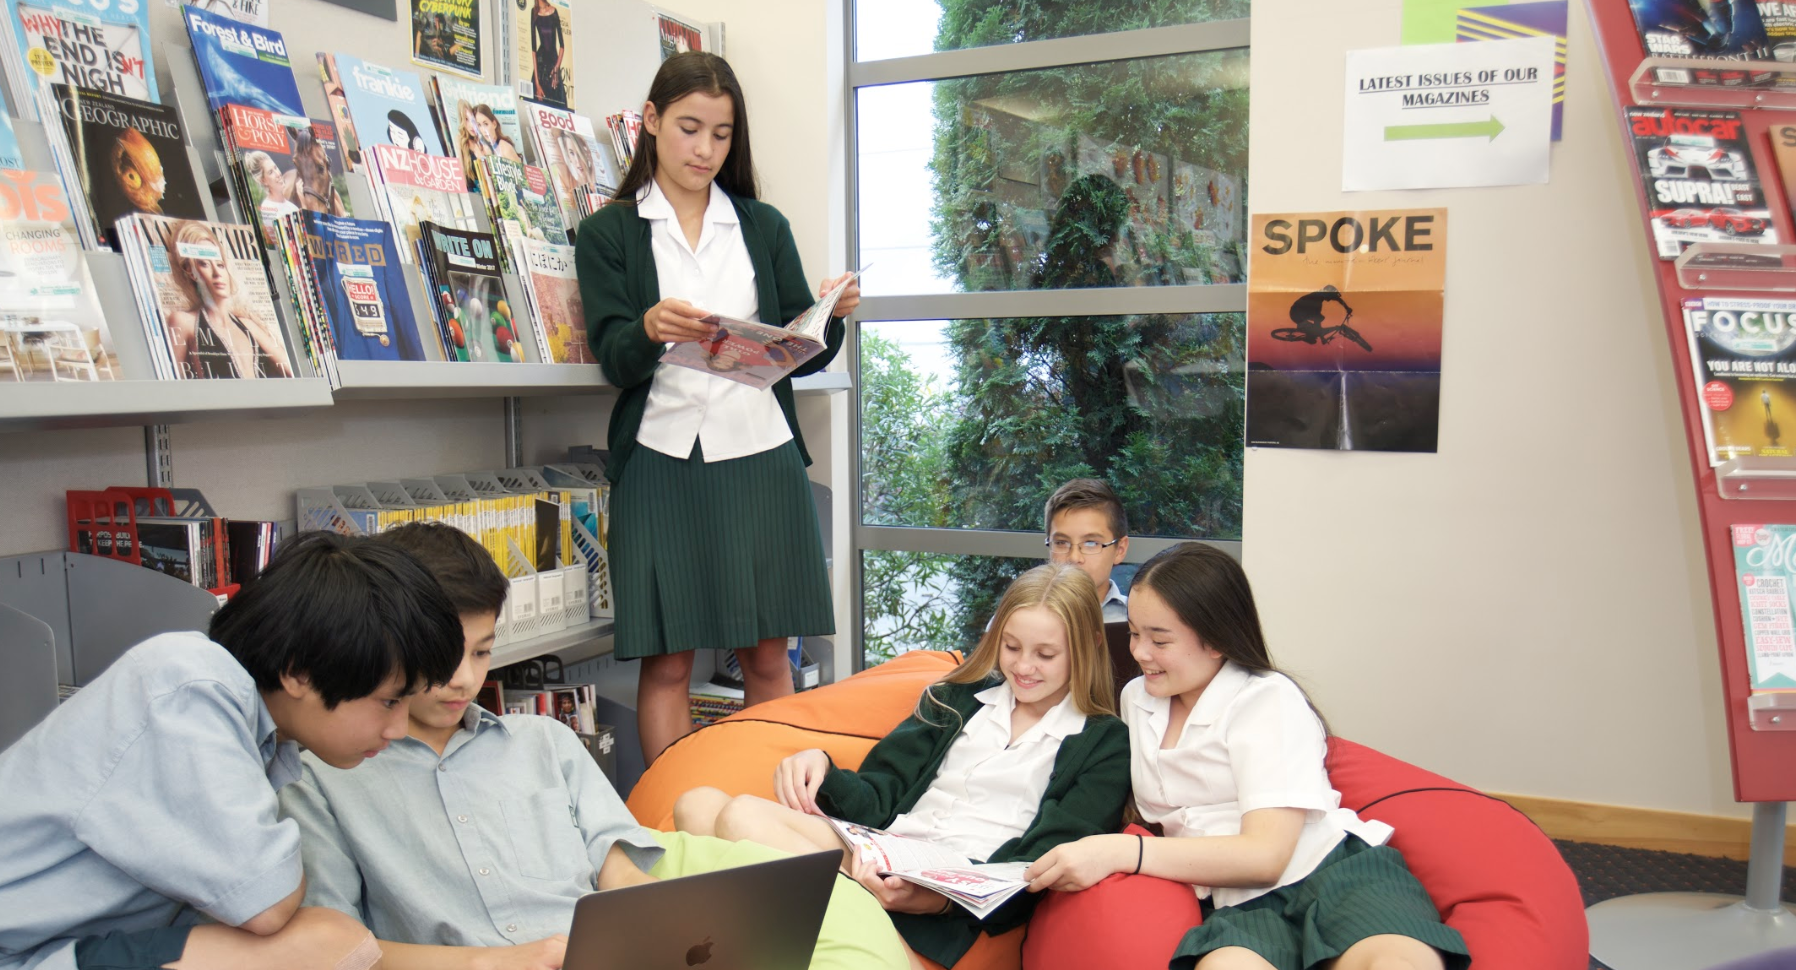 Six Burnside High School students reading books on beanbags in a library